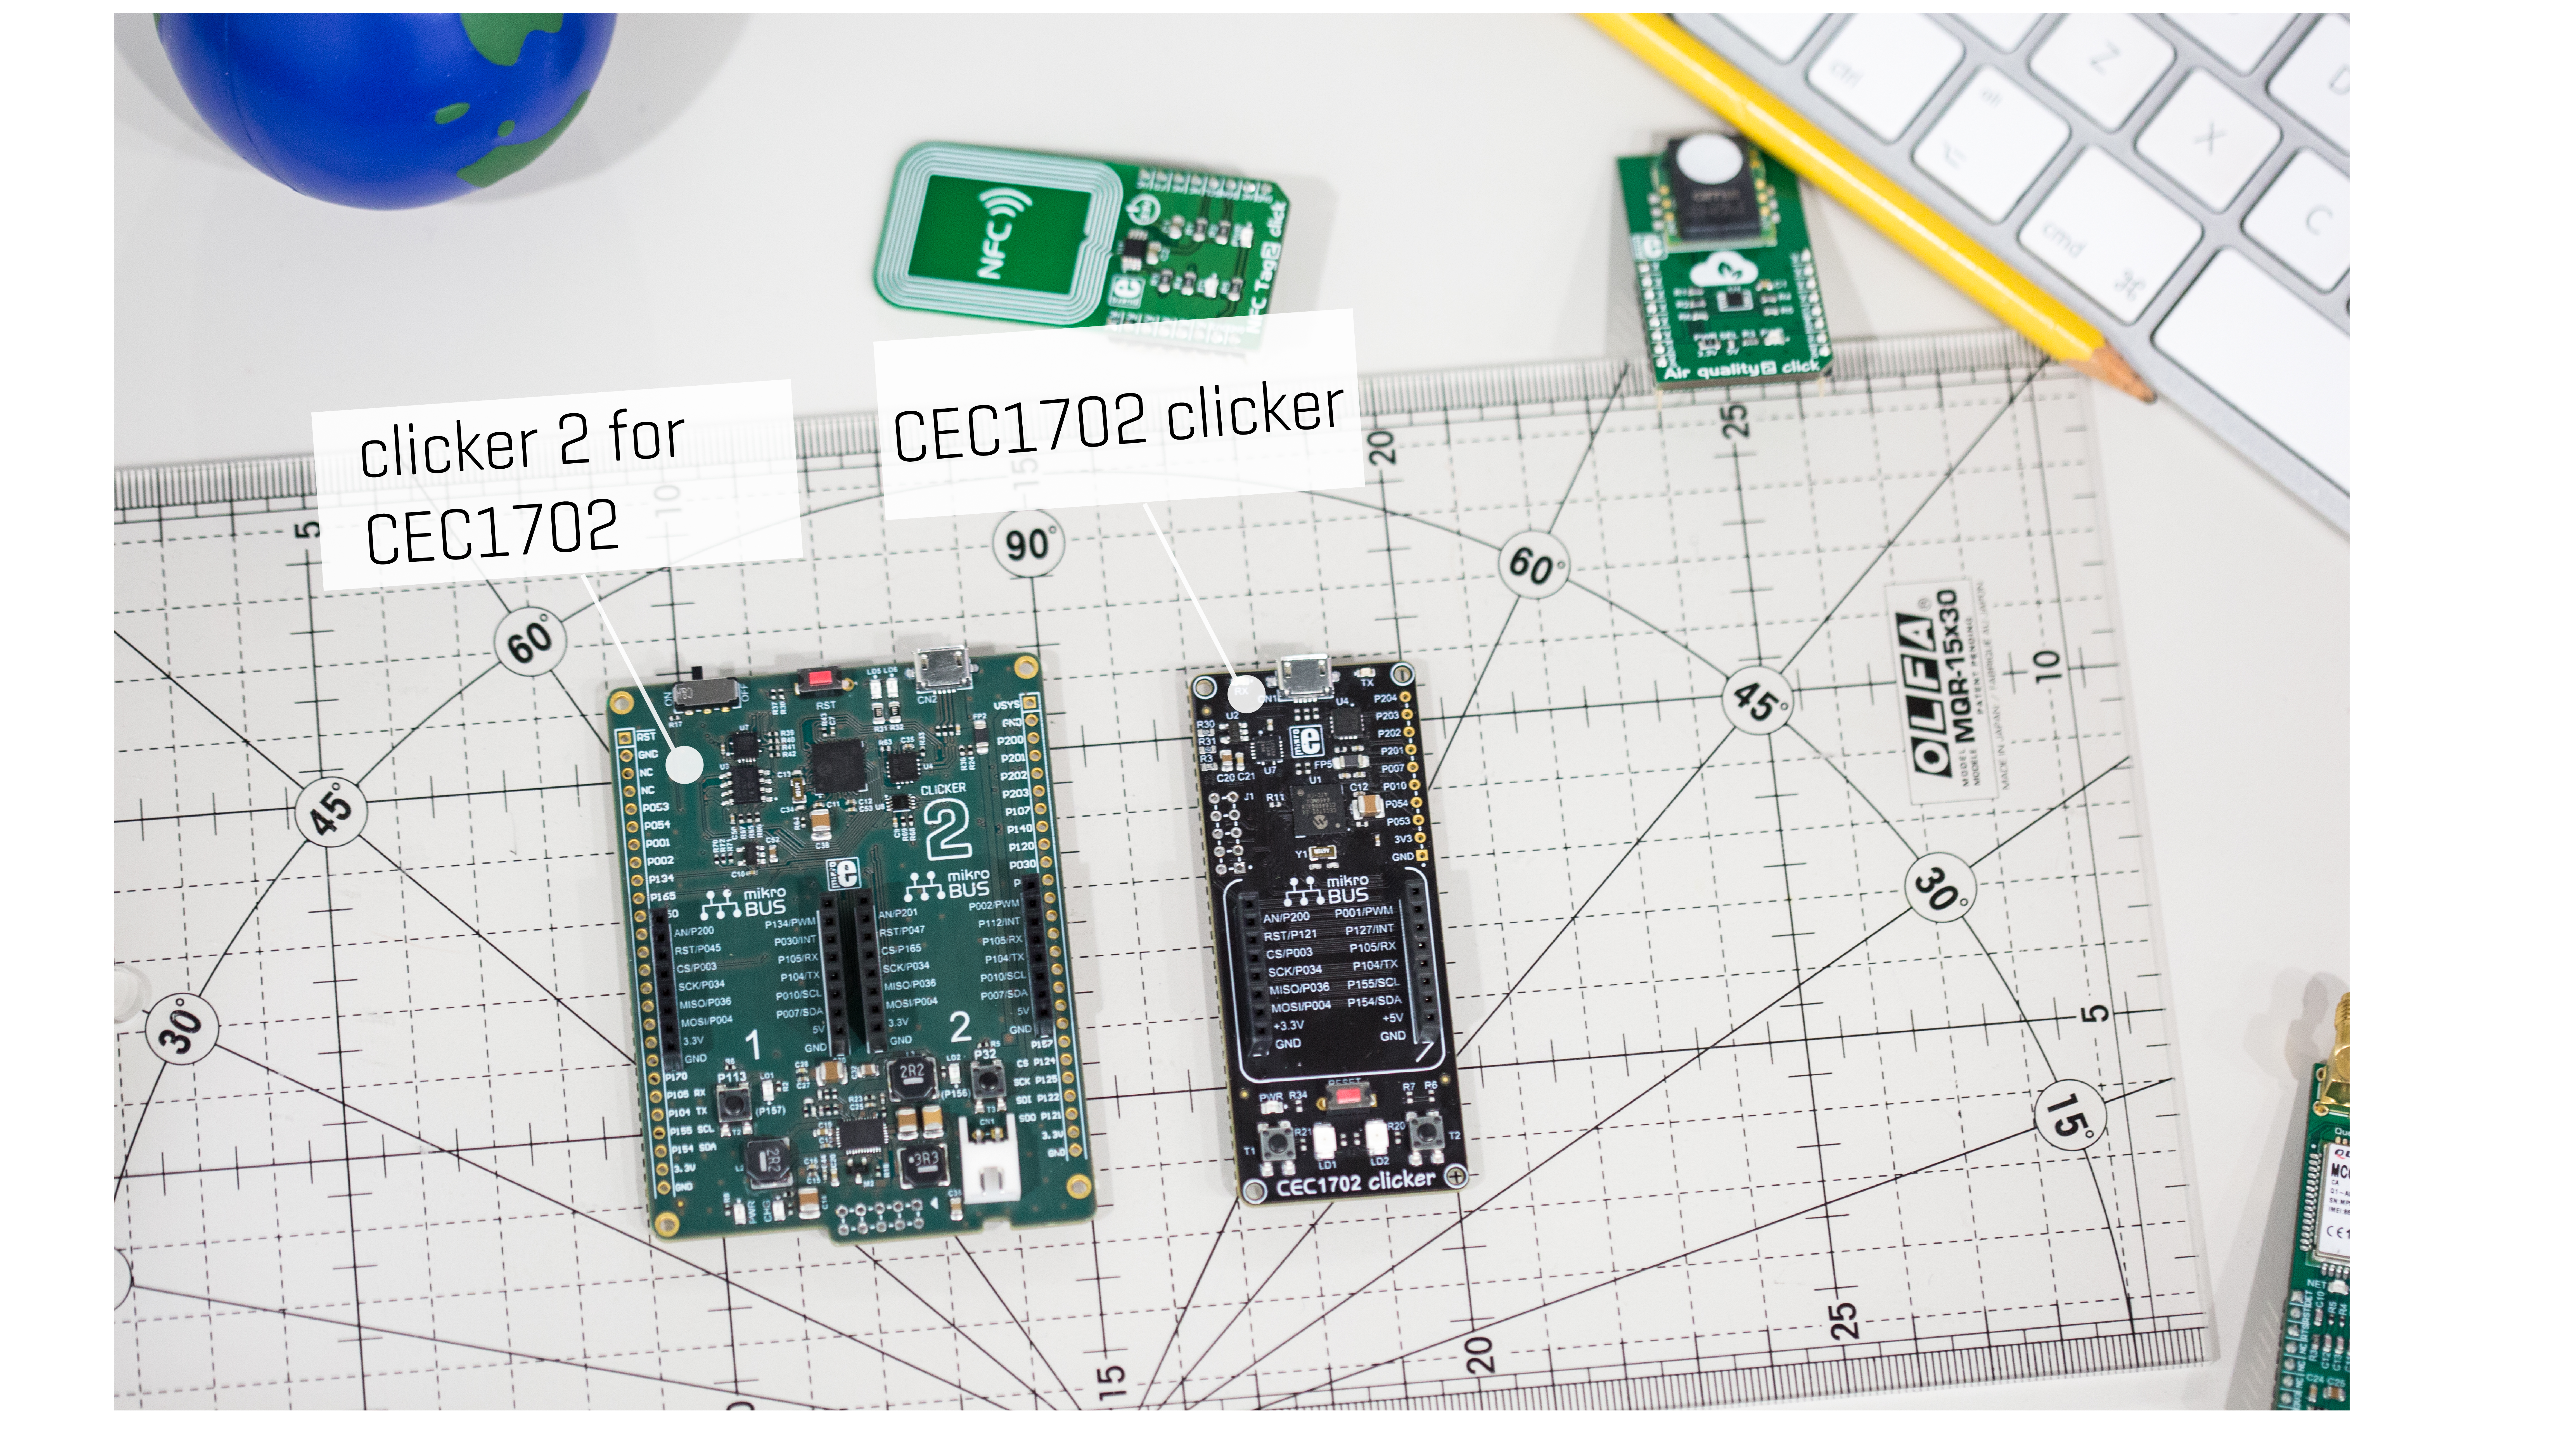 From idea to prototype in no time – clicker and clicker 2 for CEC1702 are out